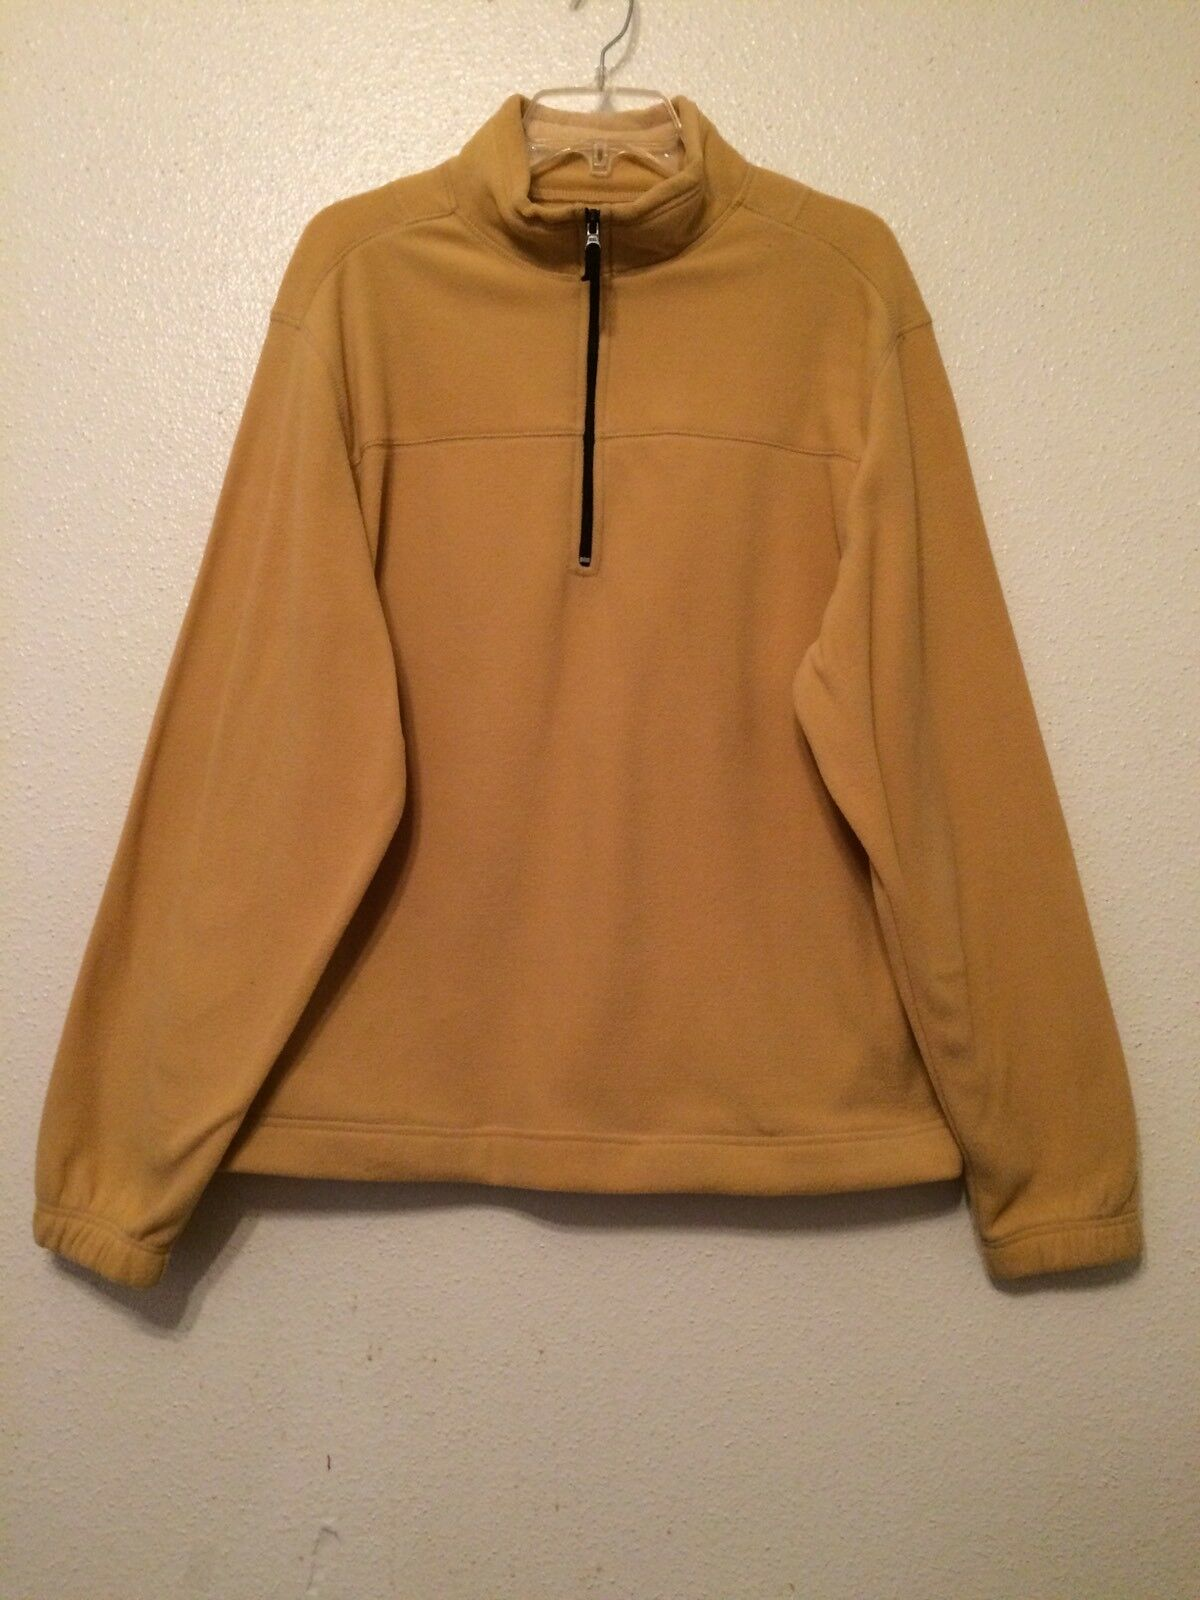 Saddlebred Mens Size Medium Tan Zip Fleece Pullover Jacket | eBay